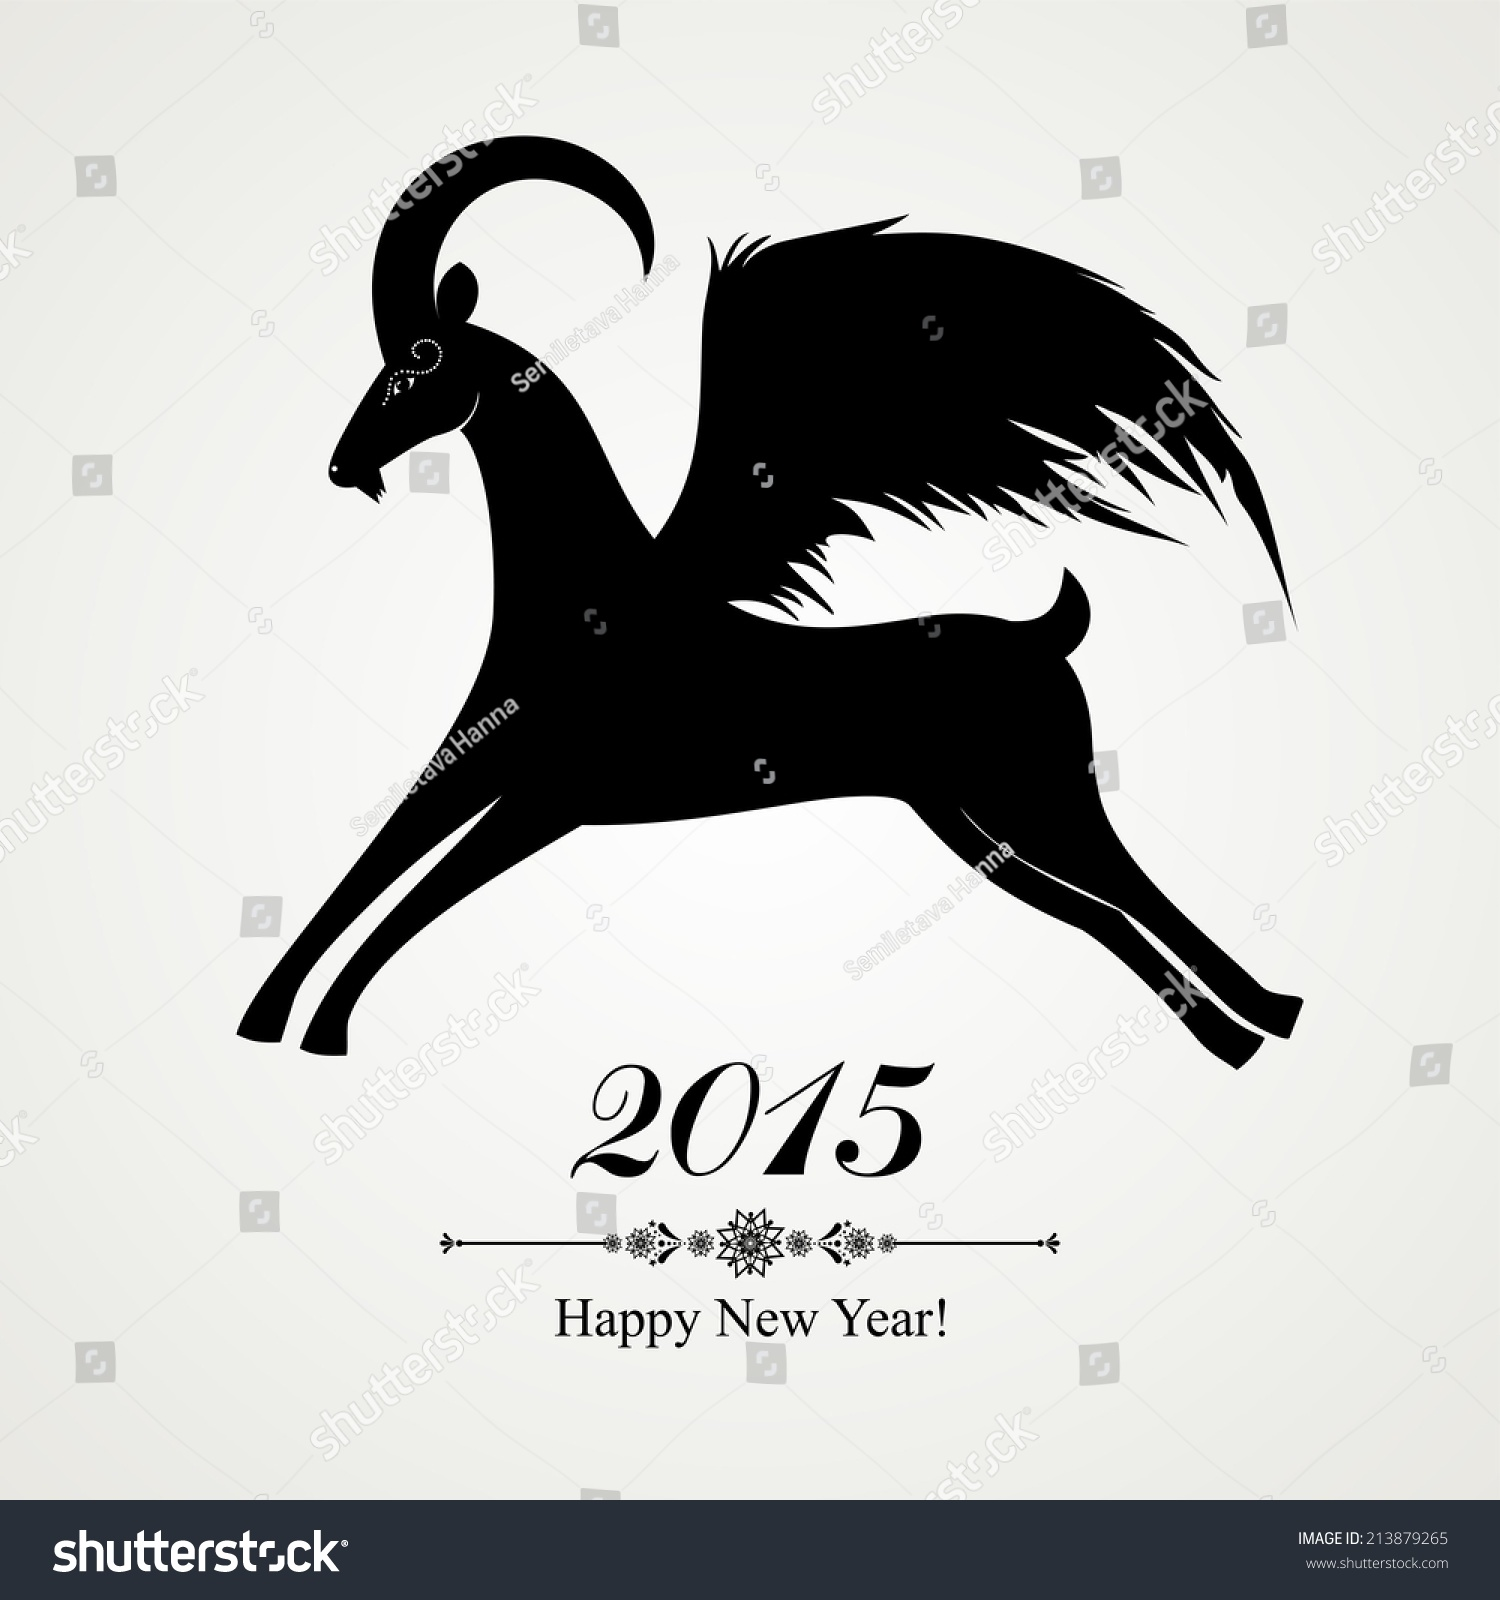 2015 New Year Card Black Goat Stock Illustration 213879265